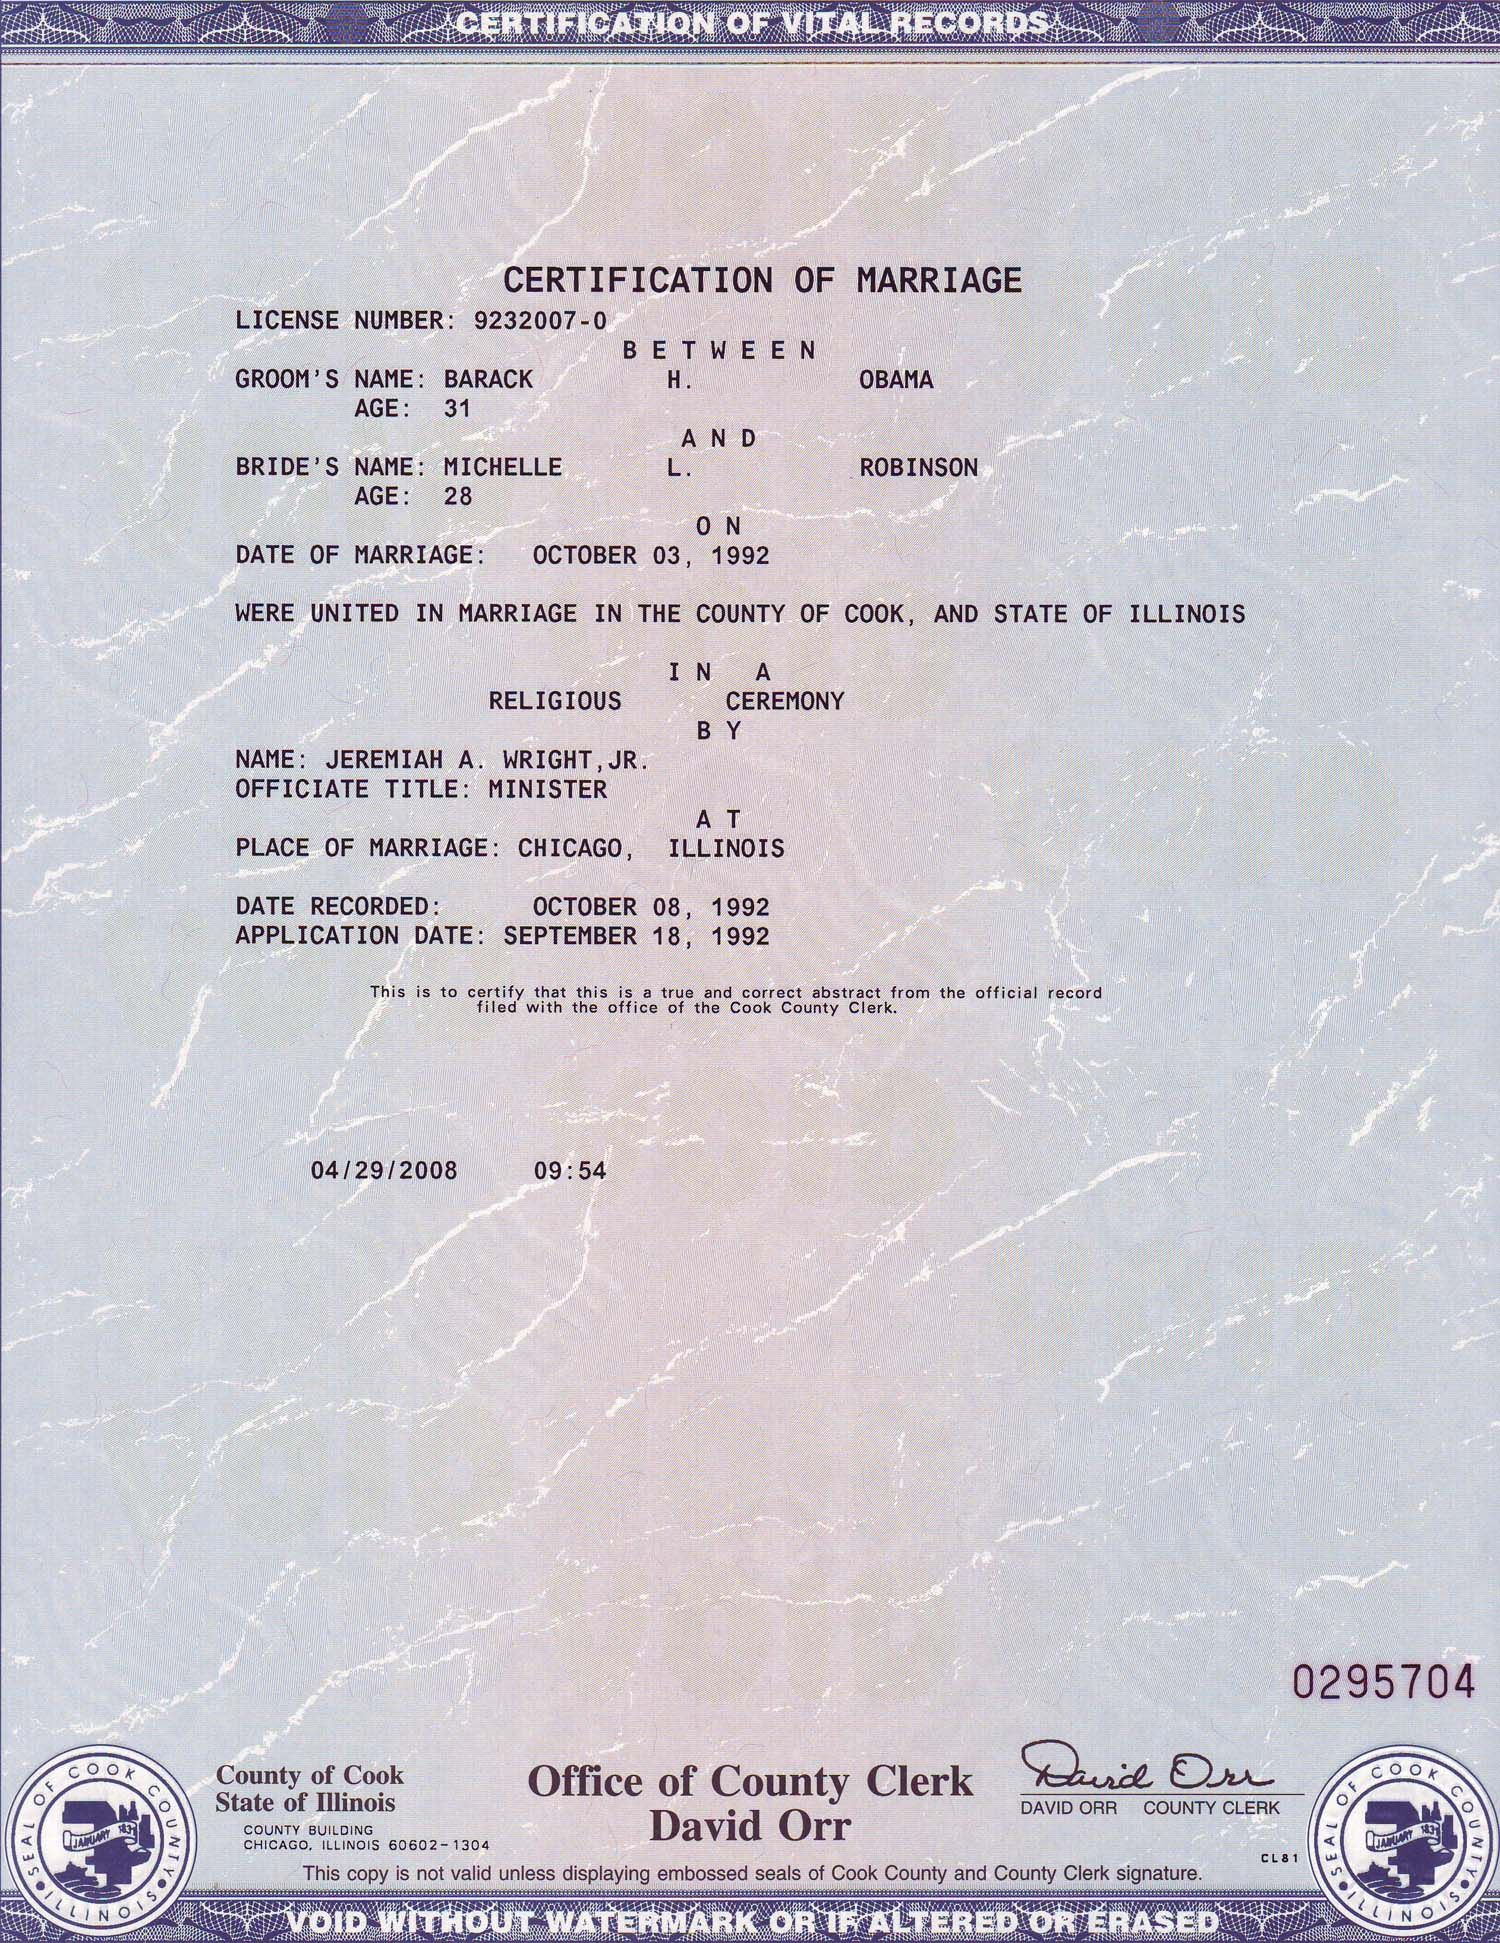 Why obama does not have birth certificate page home design idea why obama does not have birth certificate page aiddatafo Choice Image